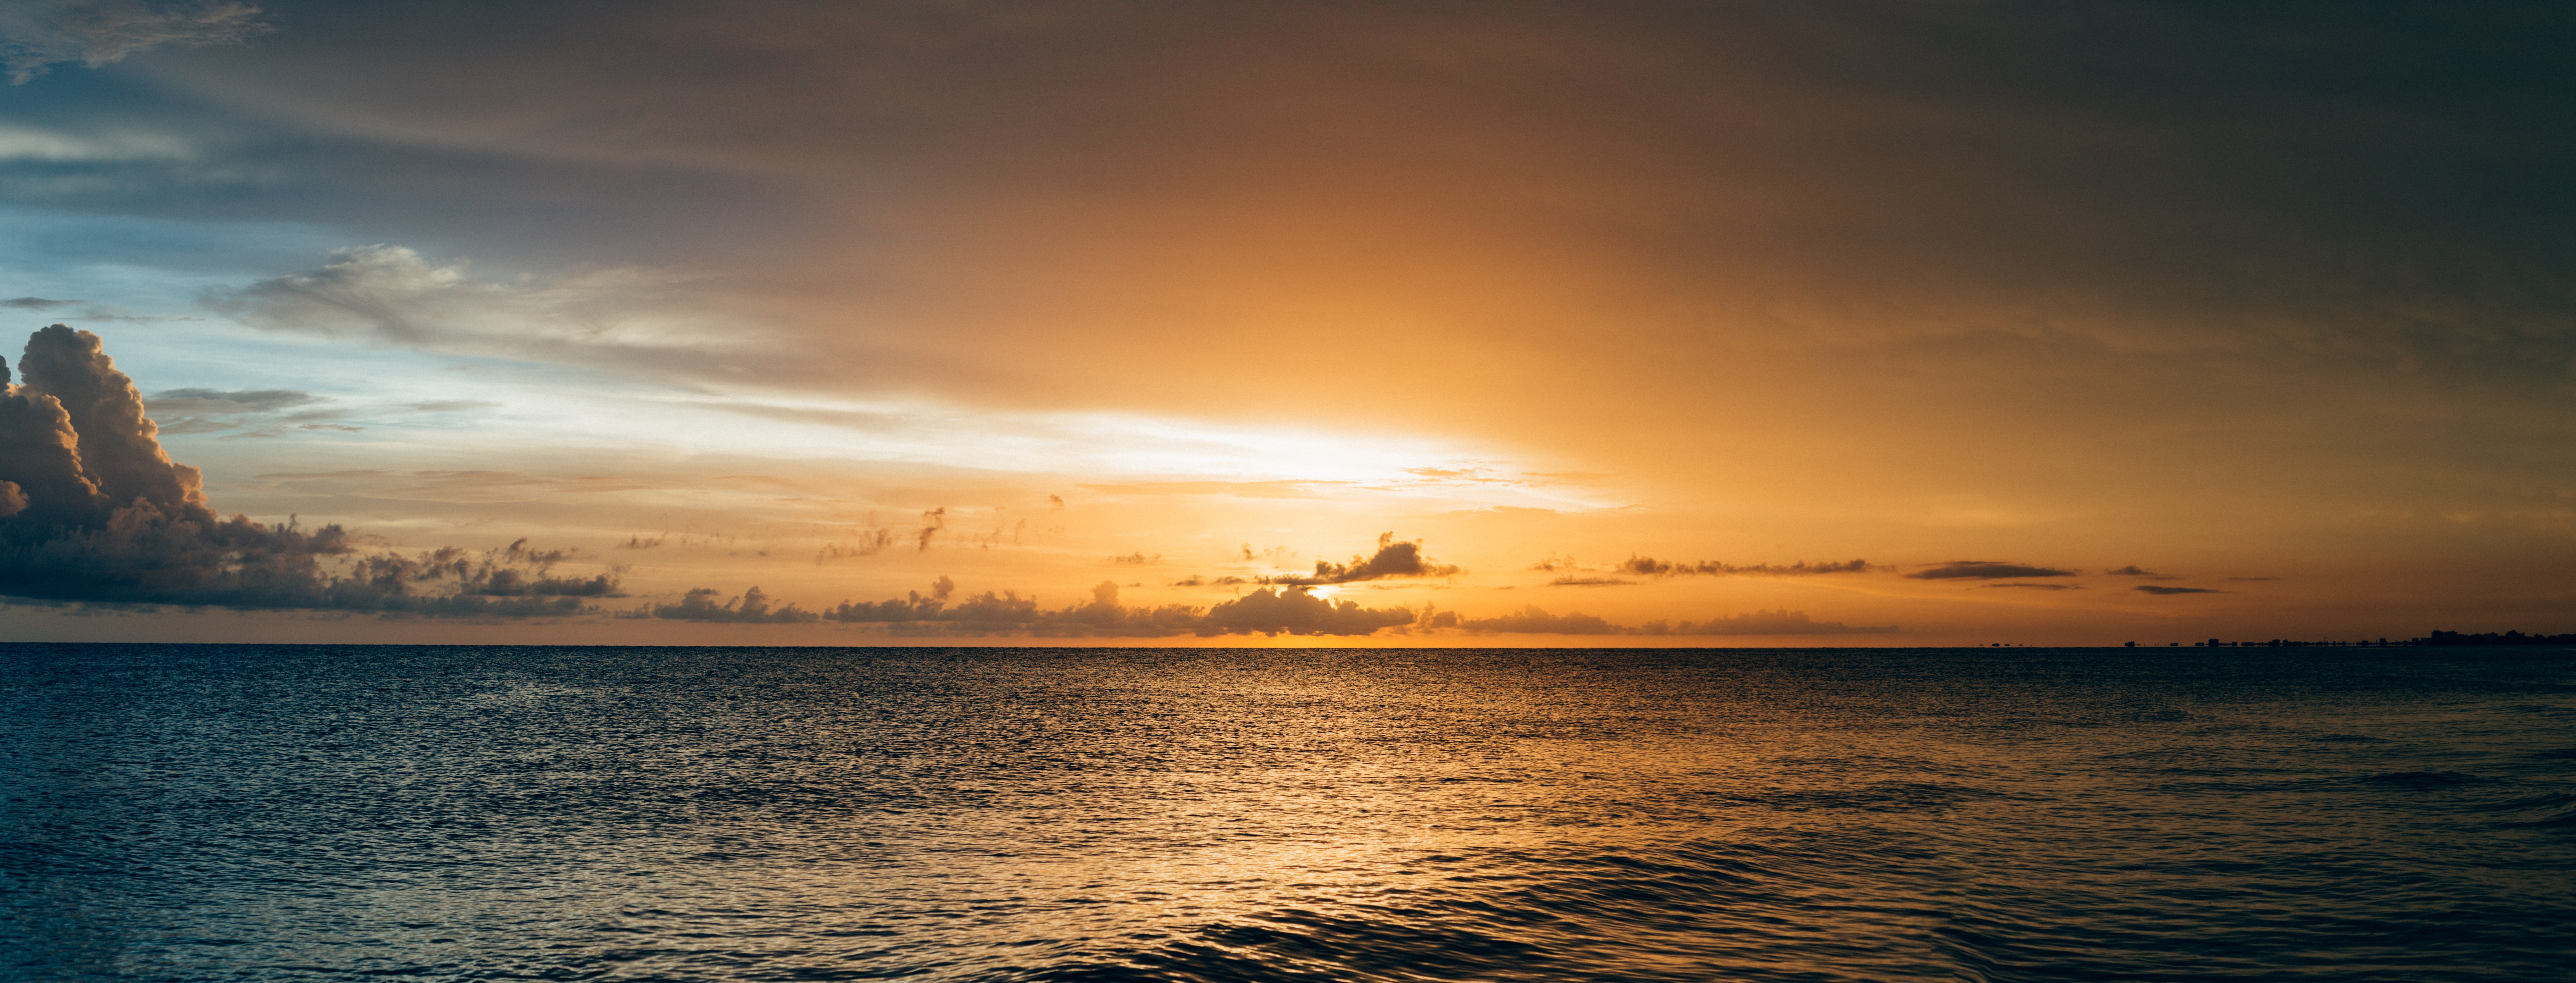 Scenery of Sea Water during Sunset, Beach, Clouds, Dawn, Dusk, HQ Photo